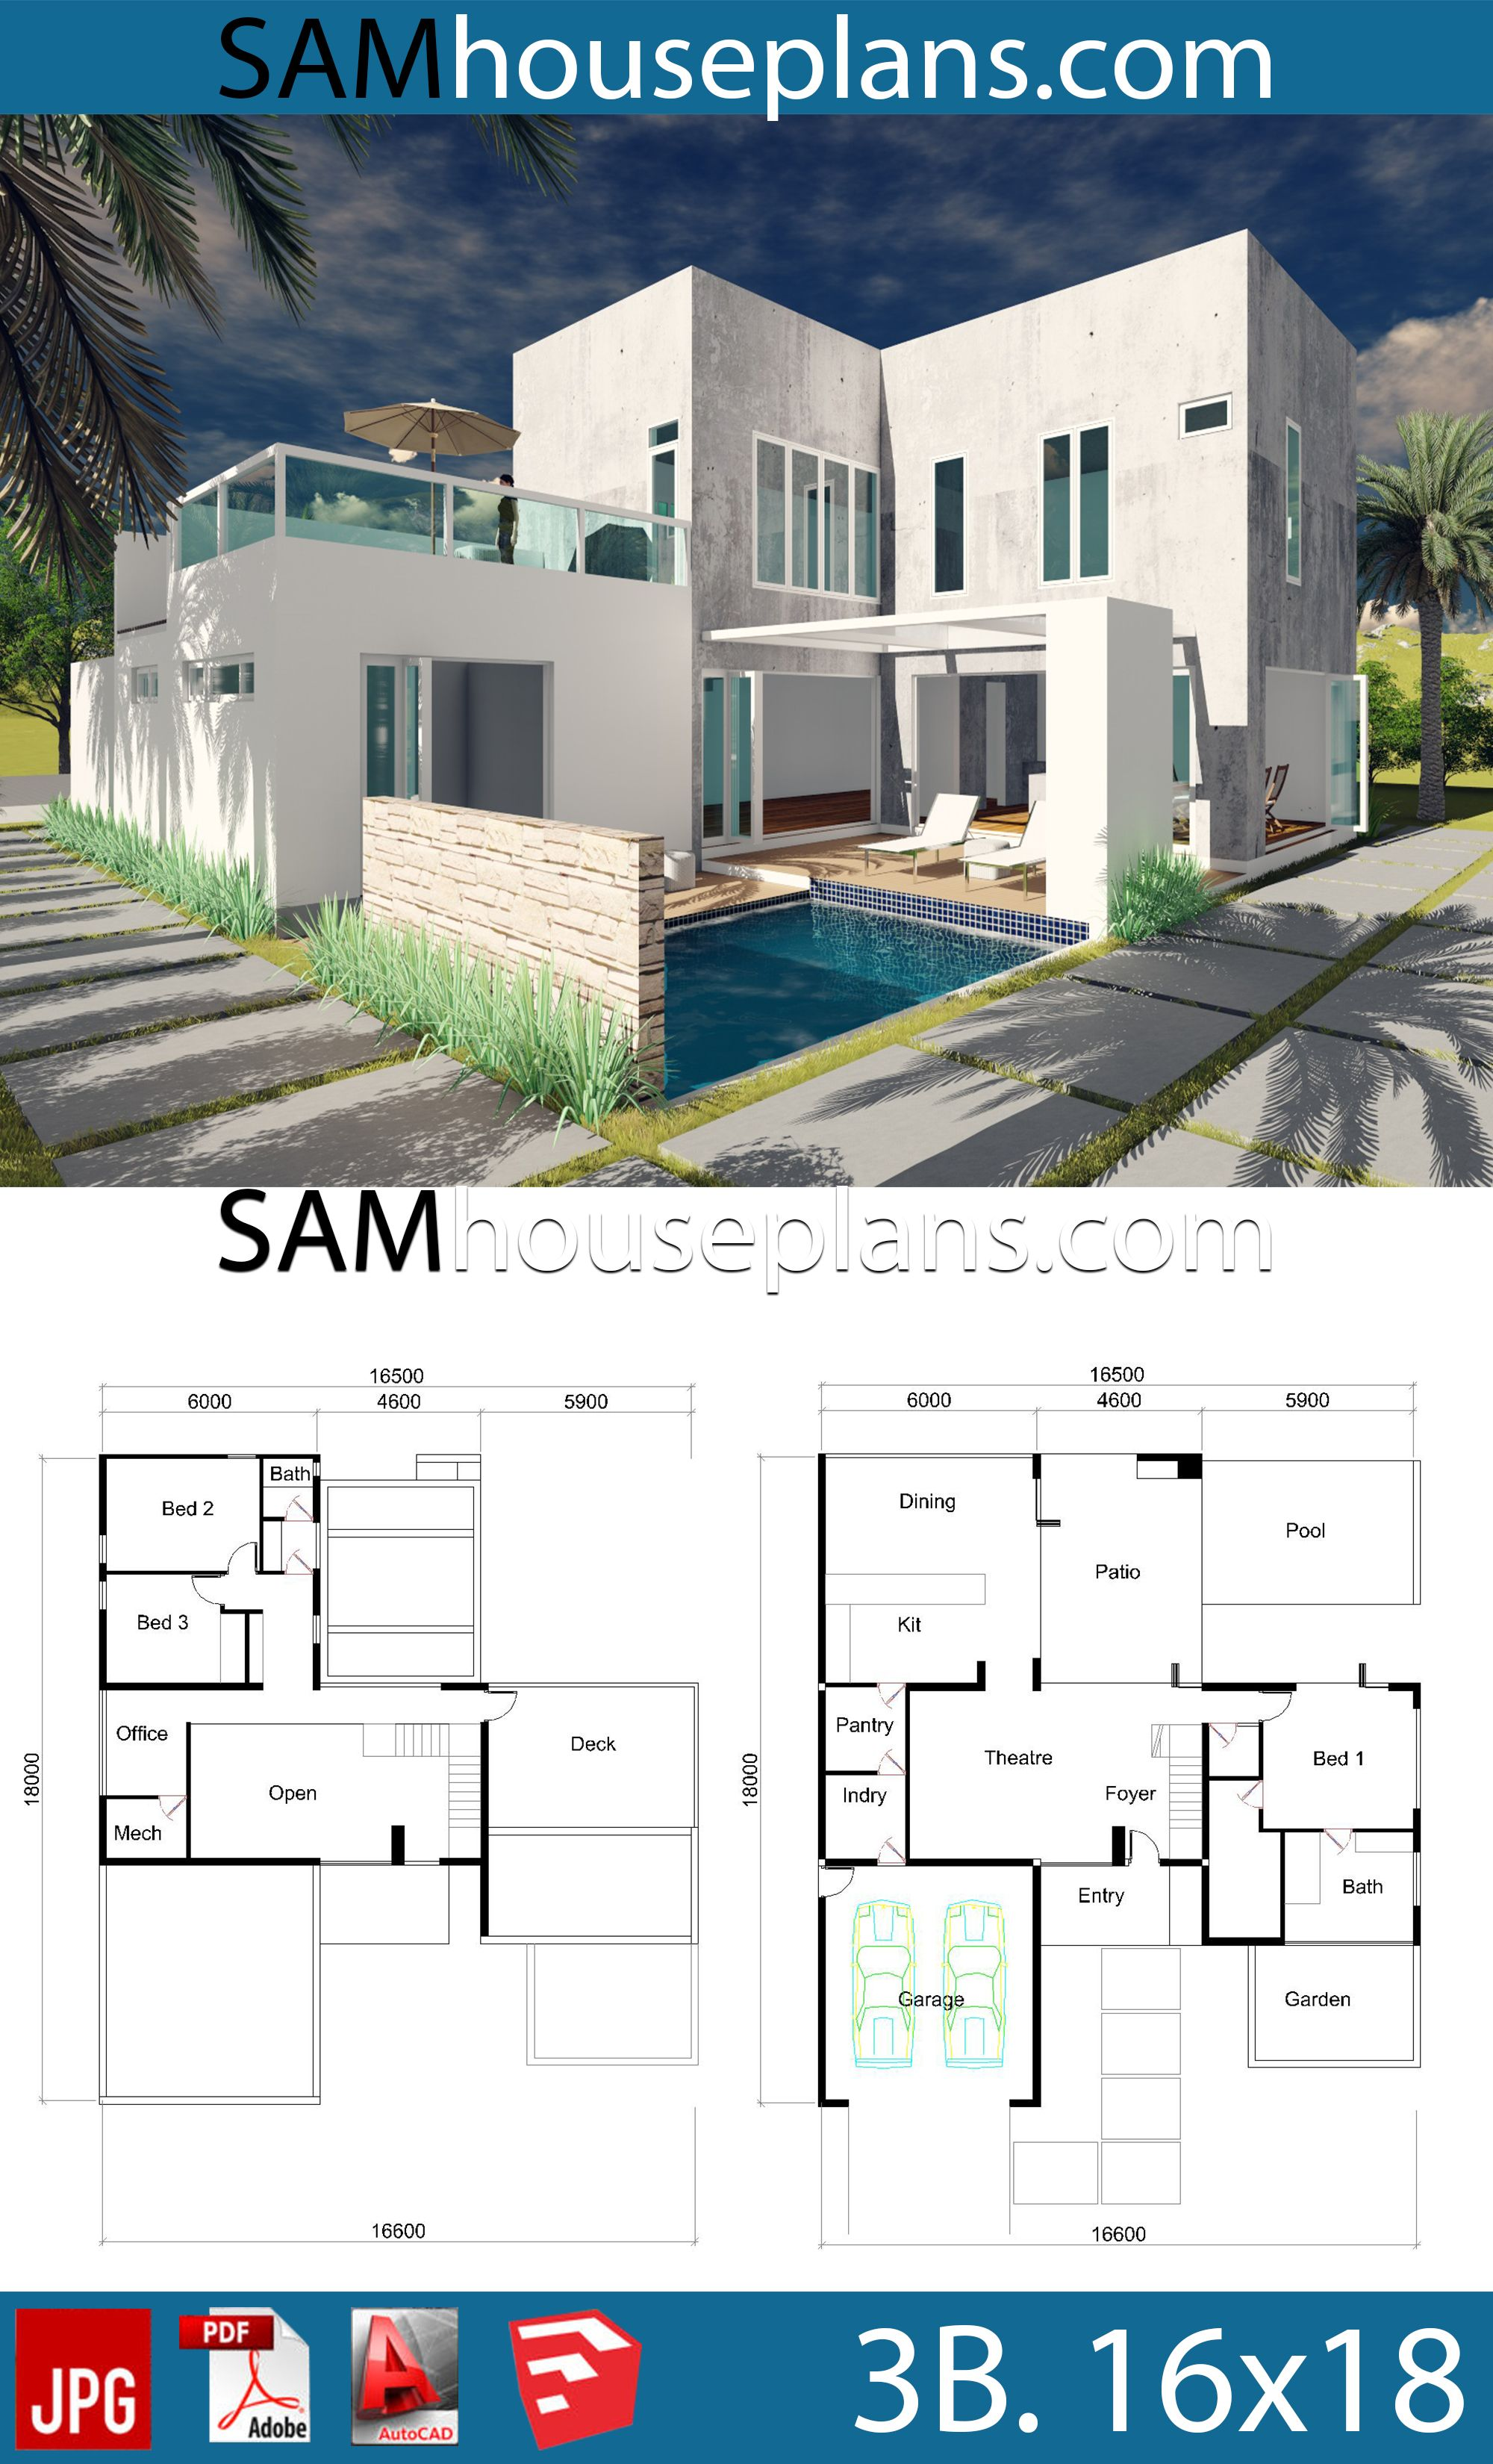 House Plans 16x18 With 3 Bedrooms House Plans Free Downloads Bungalow House Design Modern House Plans House Plans